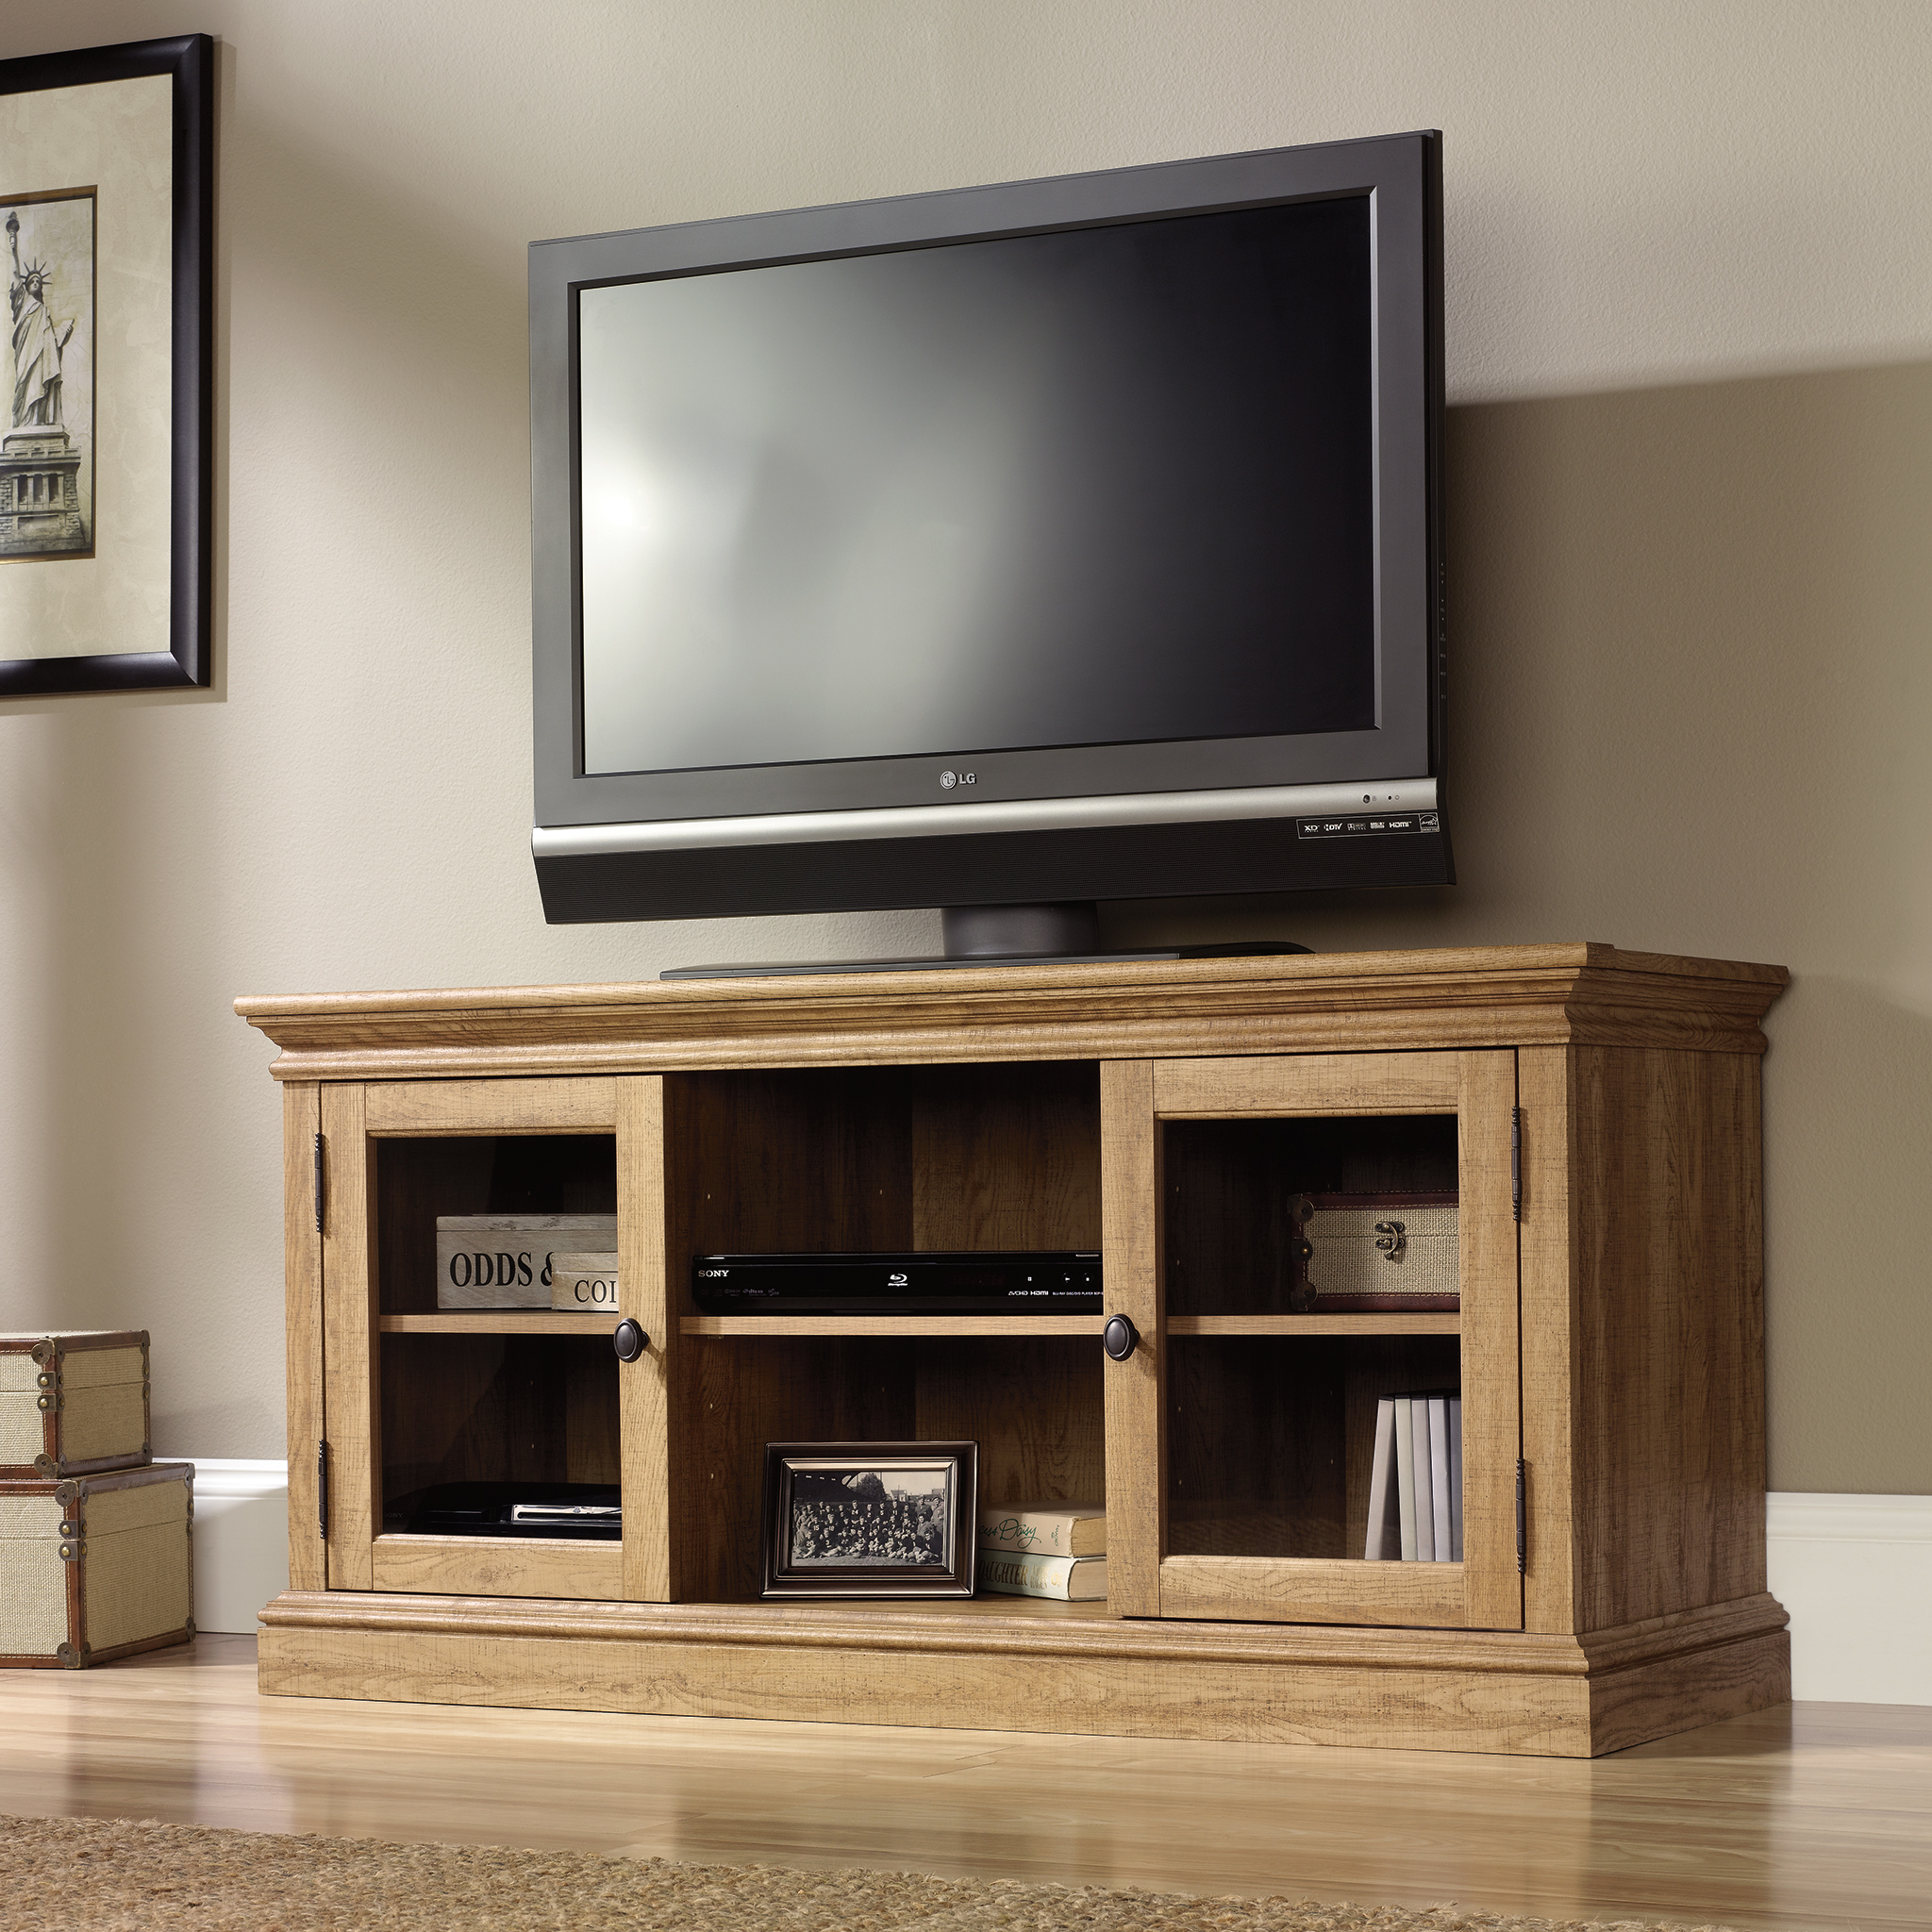 Sauder Barrister Lane Tv Stand 414958 Sauder The Furniture Co